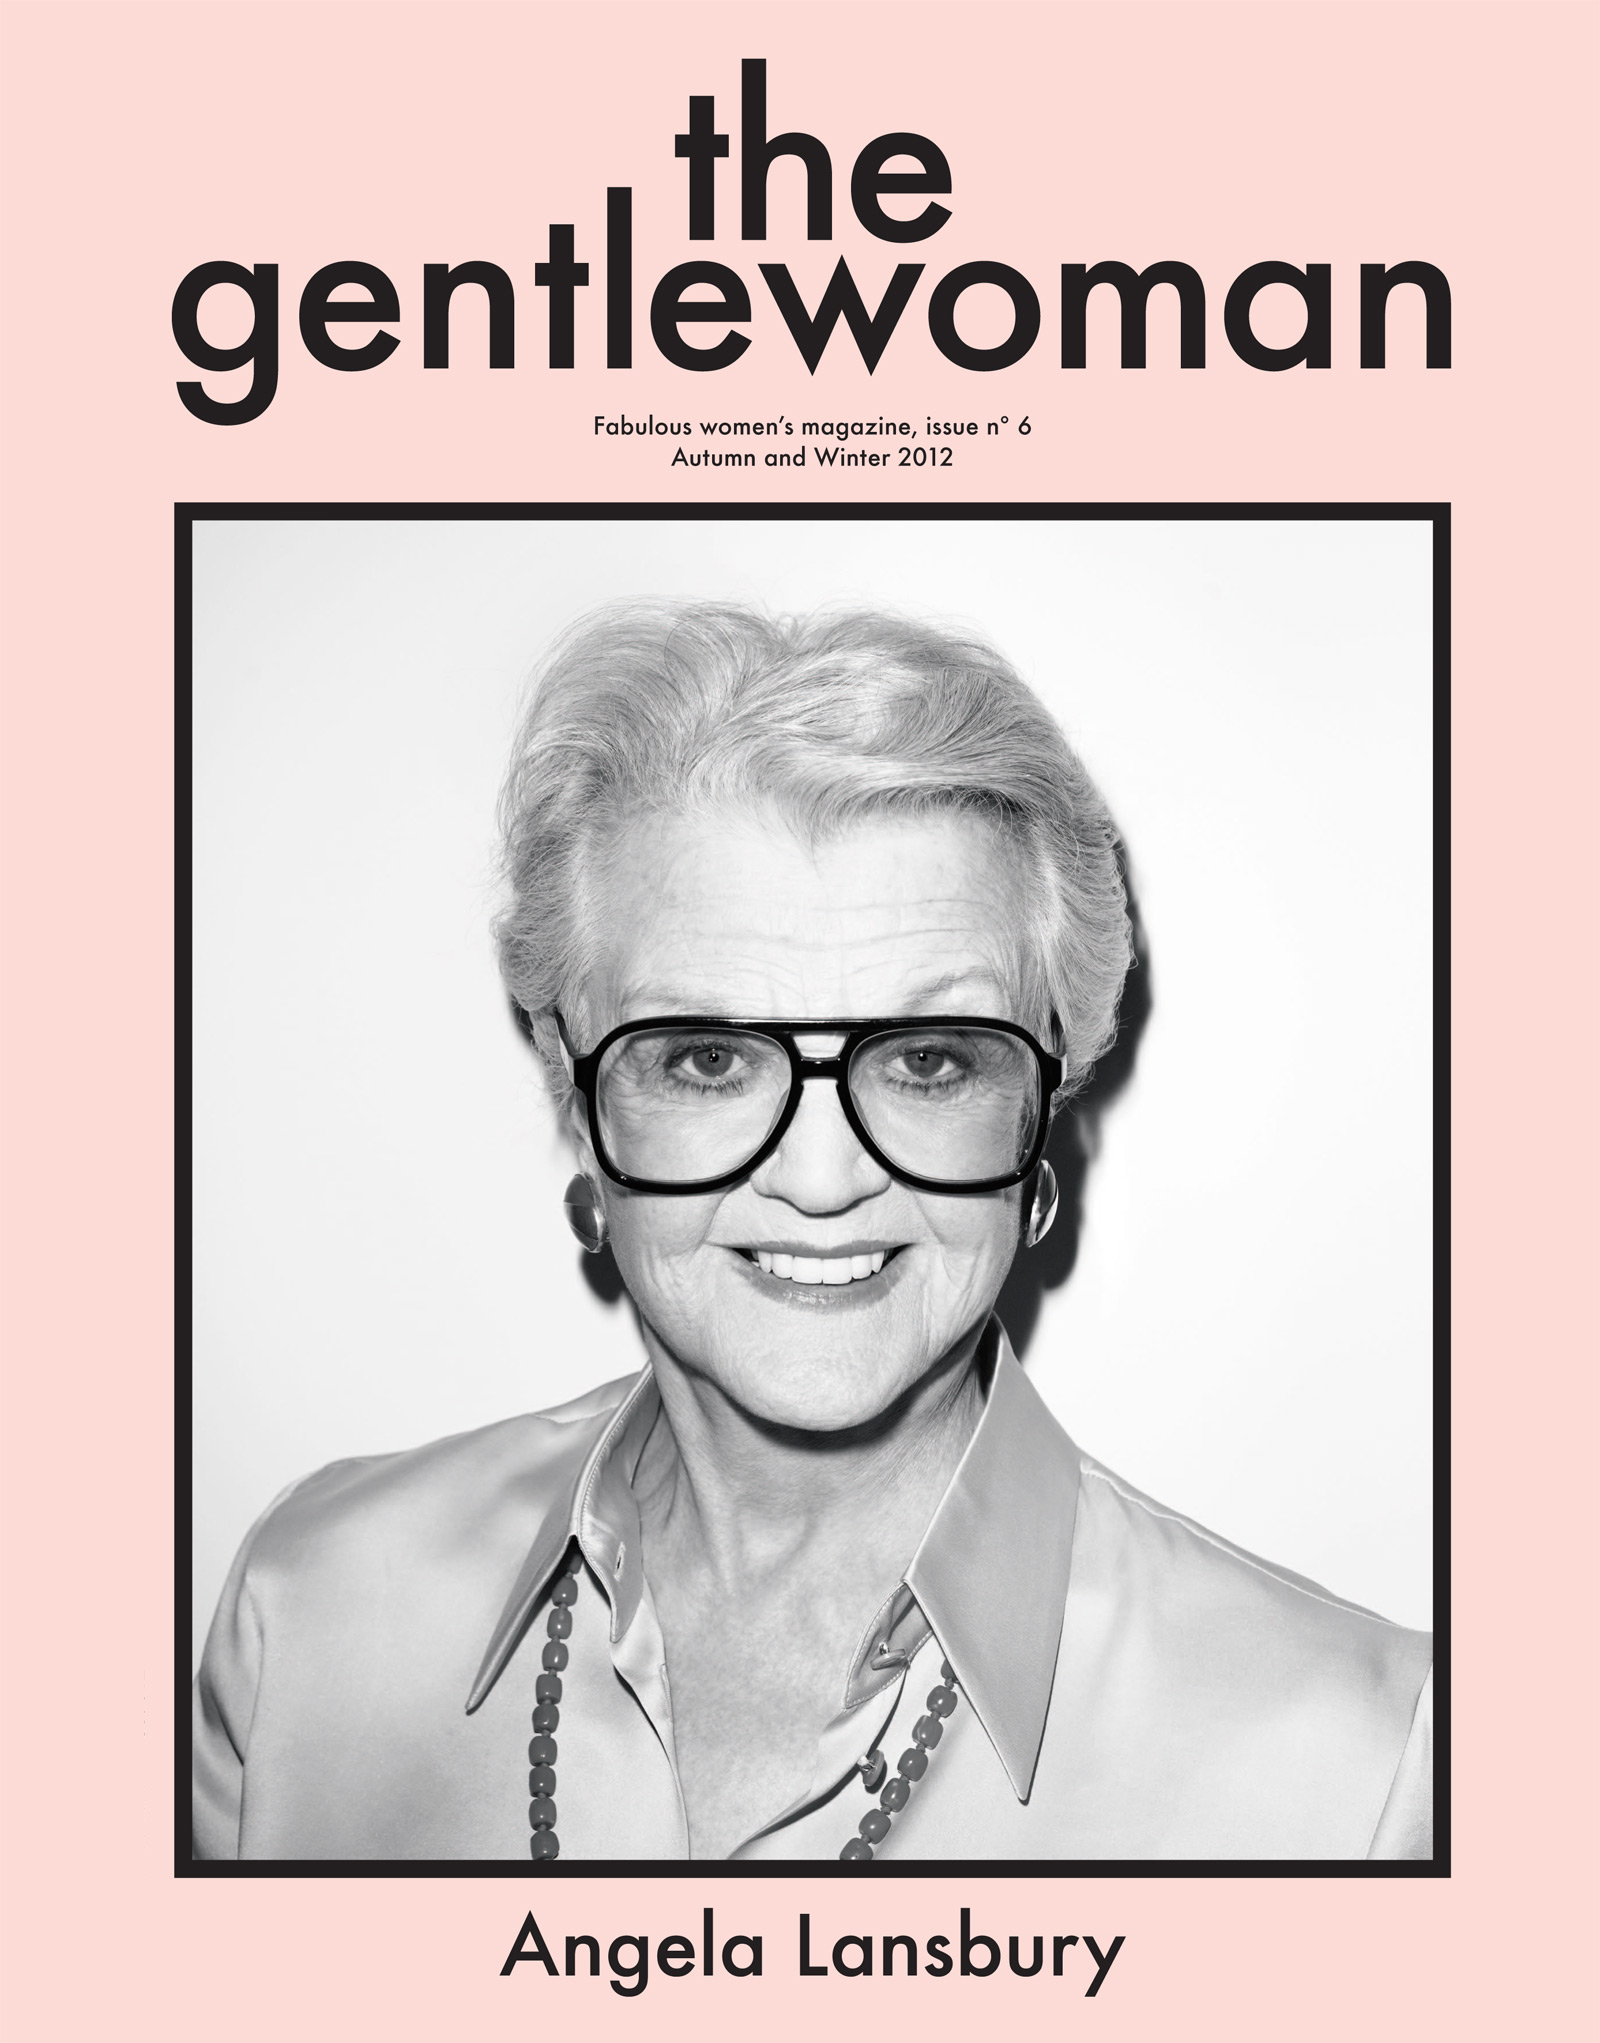 THE GENTLEWOMAN, A MAGAZINE THAT'S ALSO A CLUB